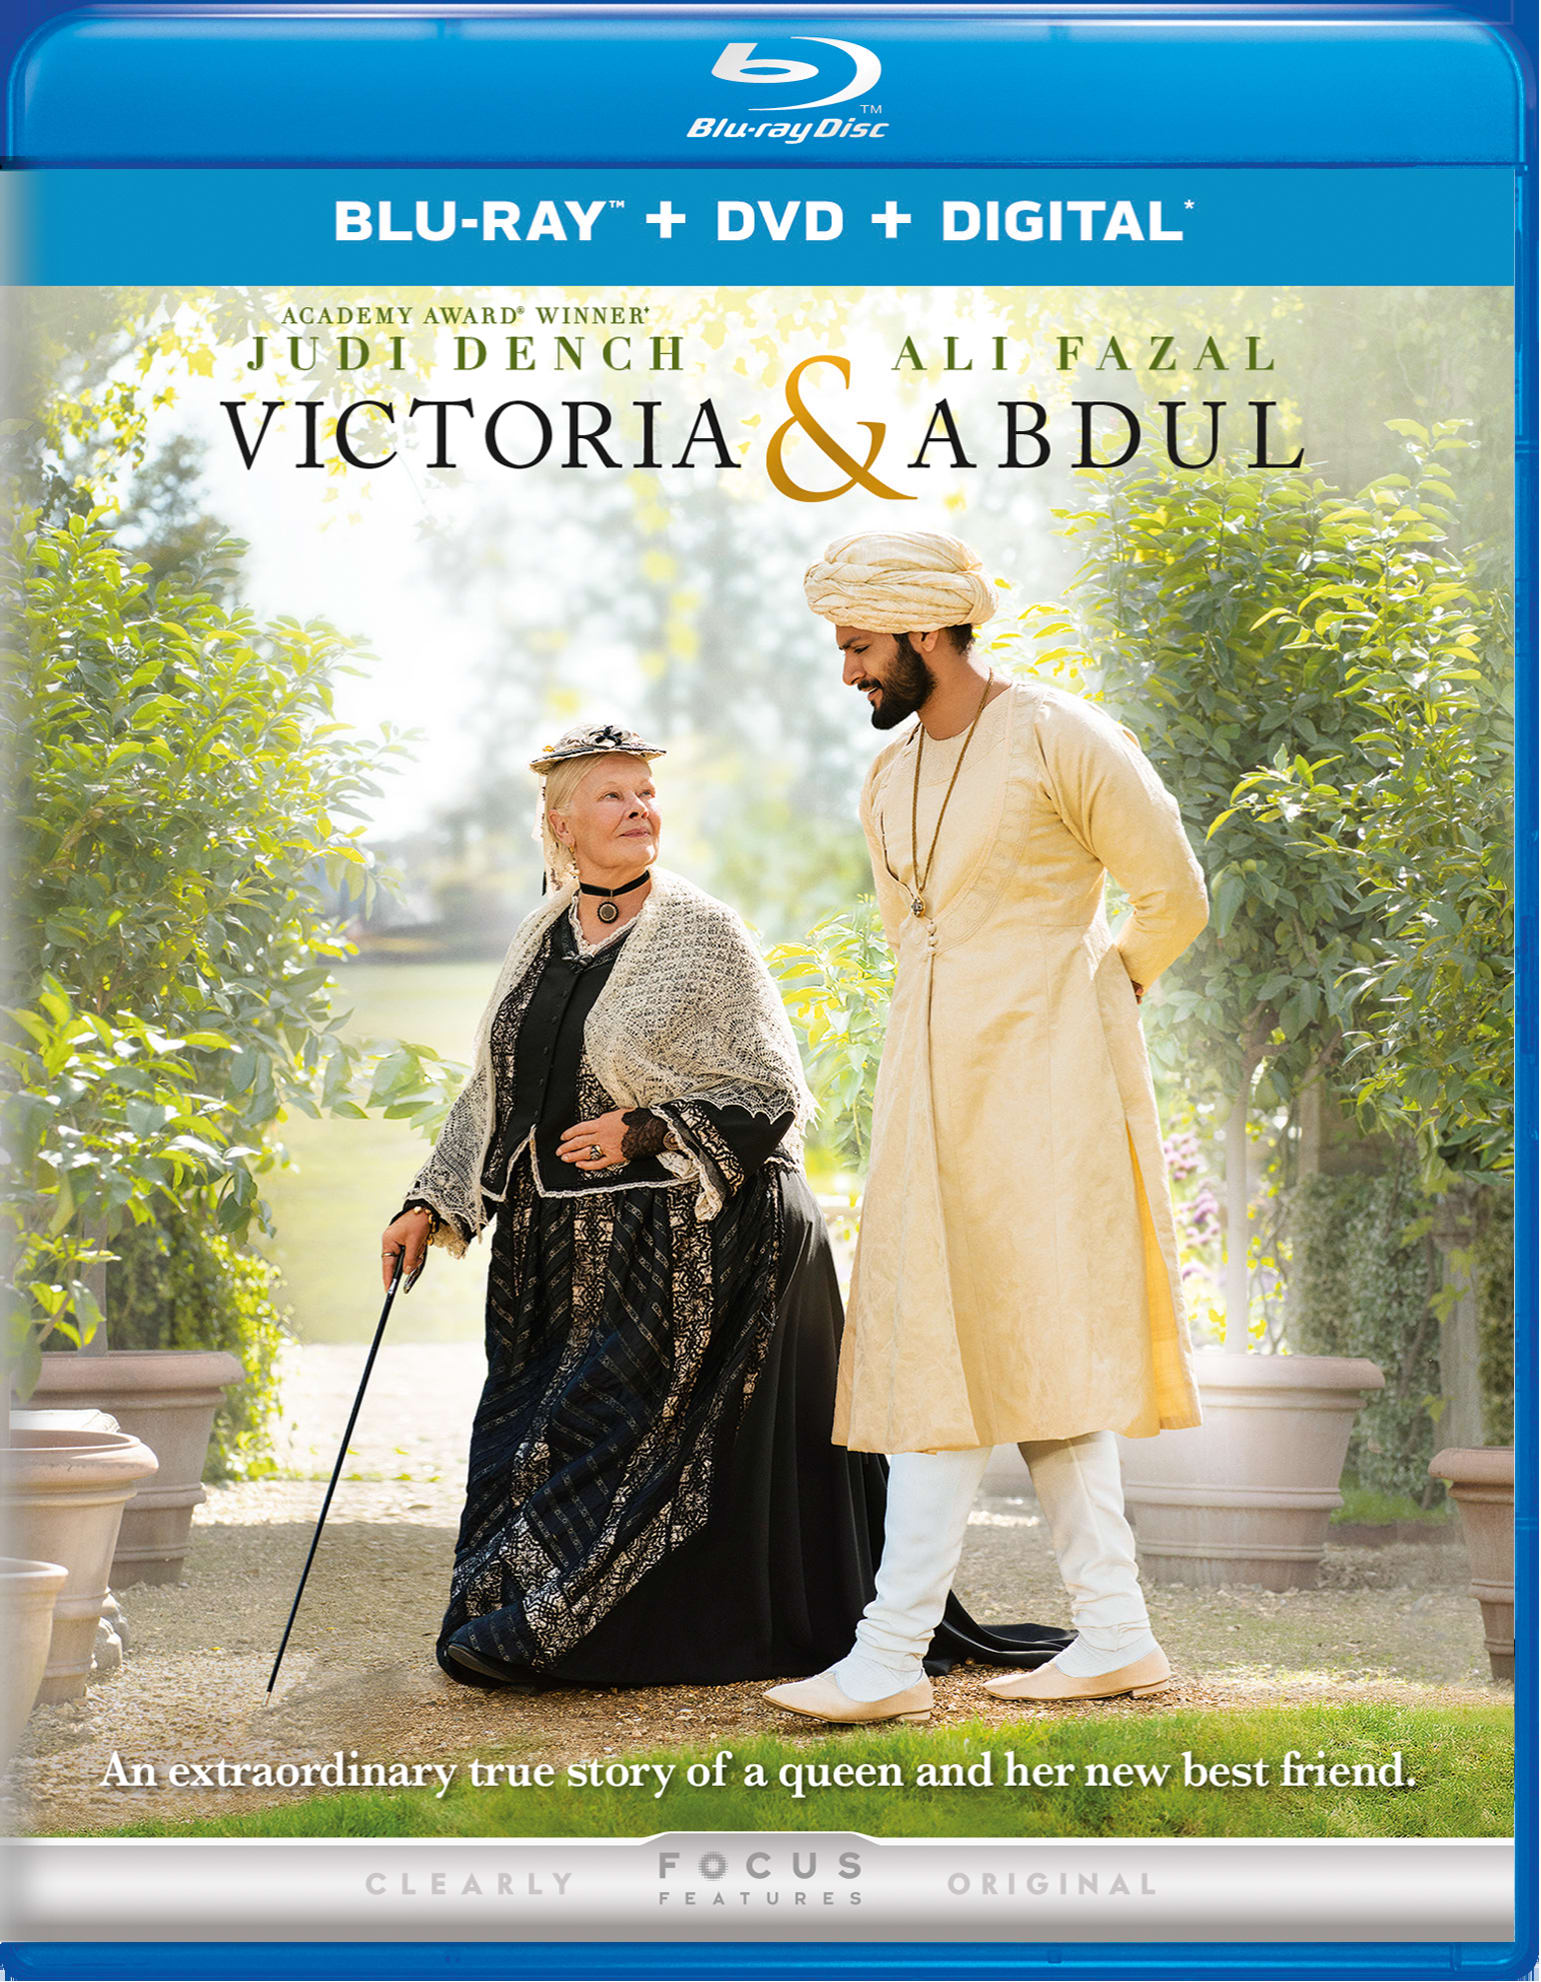 Victoria and Abdul (DVD + Digital) [Blu-ray]